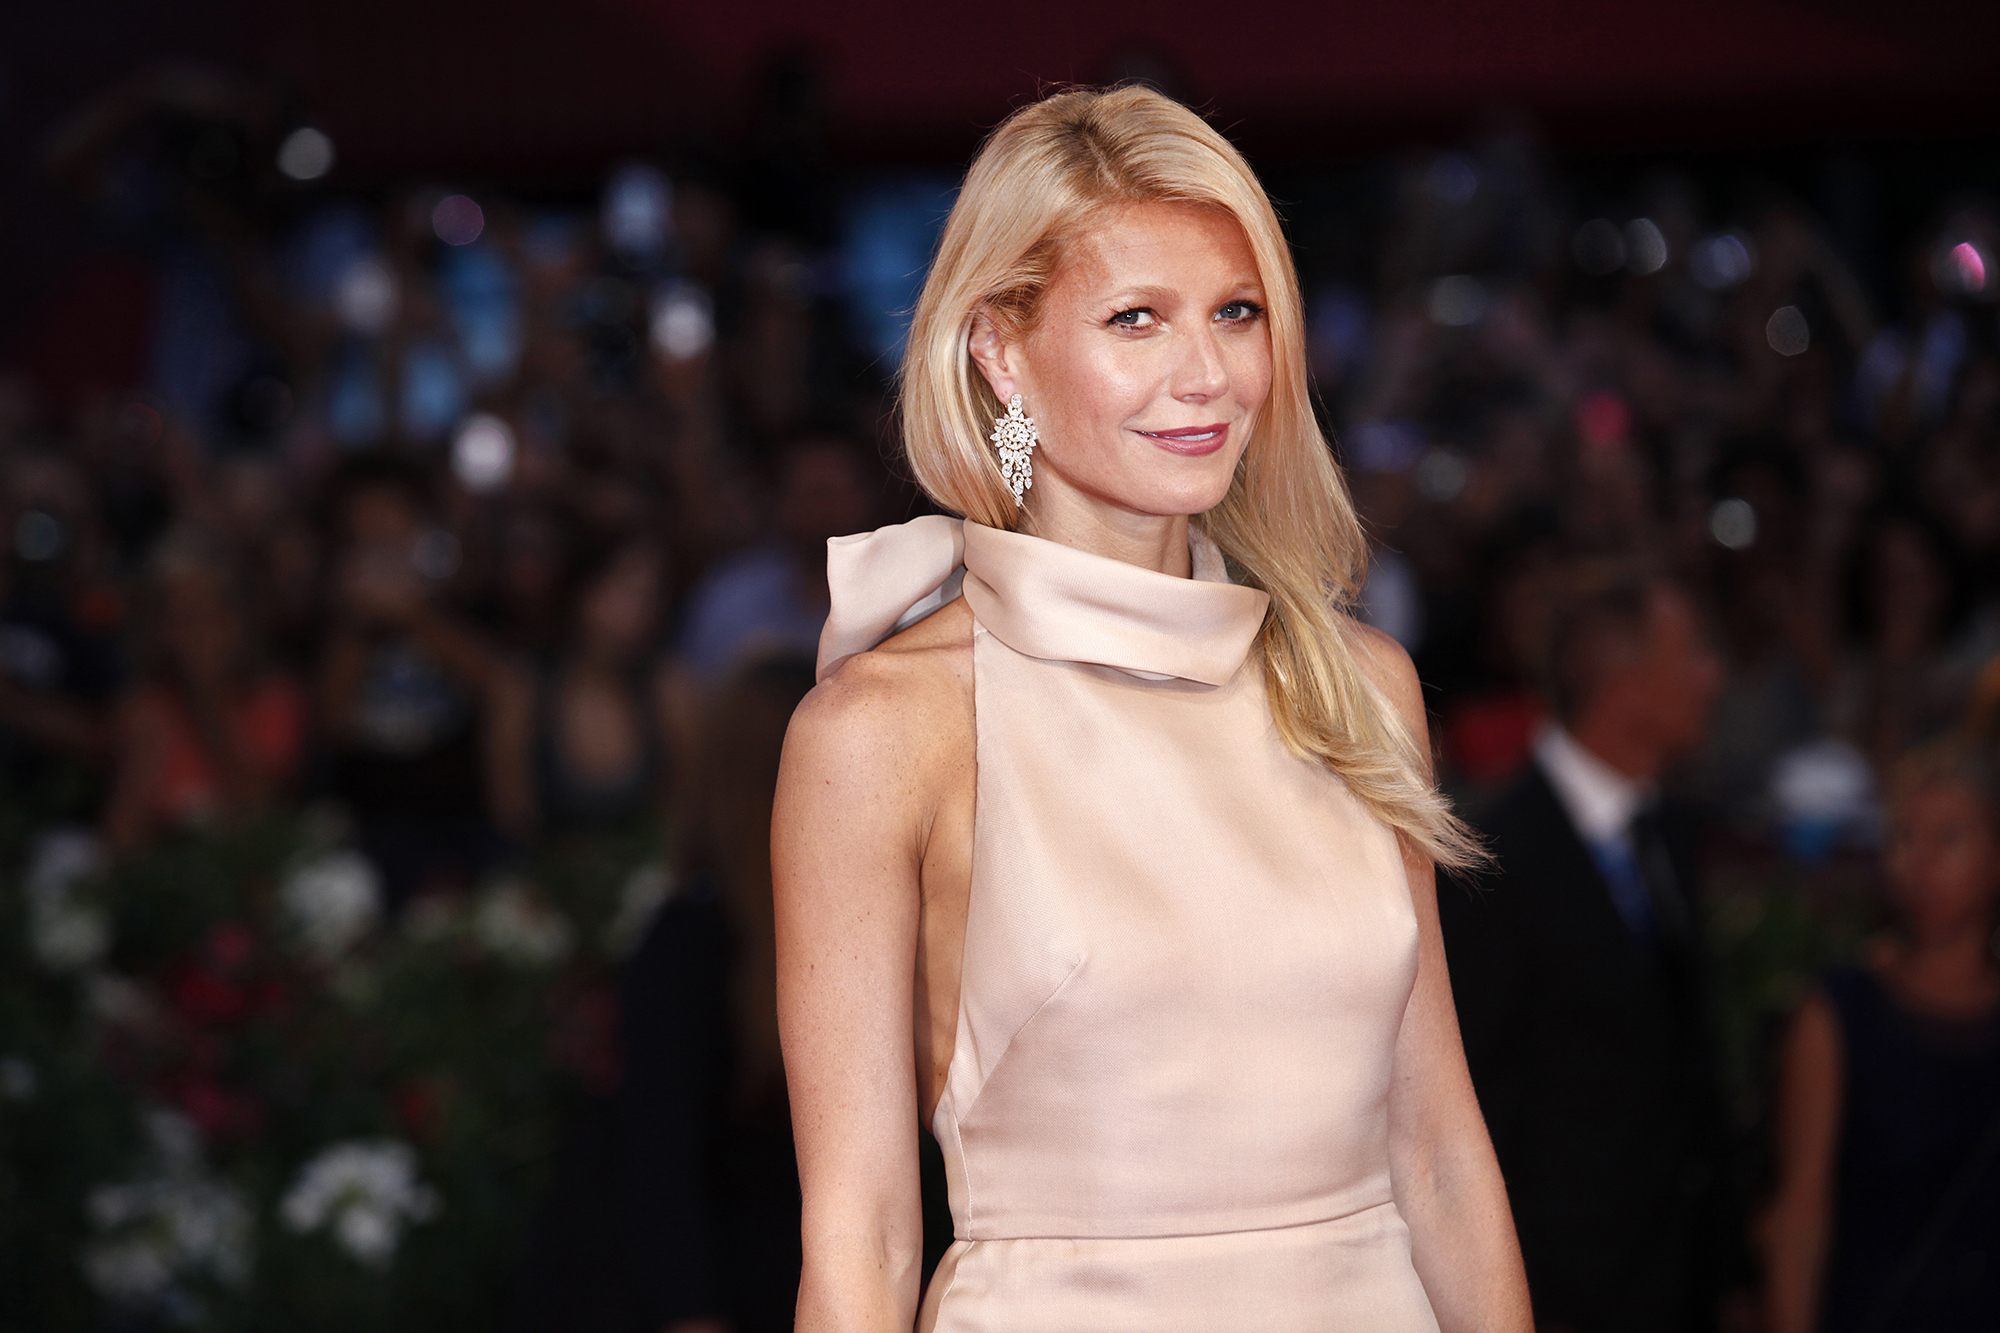 Don't blame Gwyneth Paltrow, blame the medical status quo